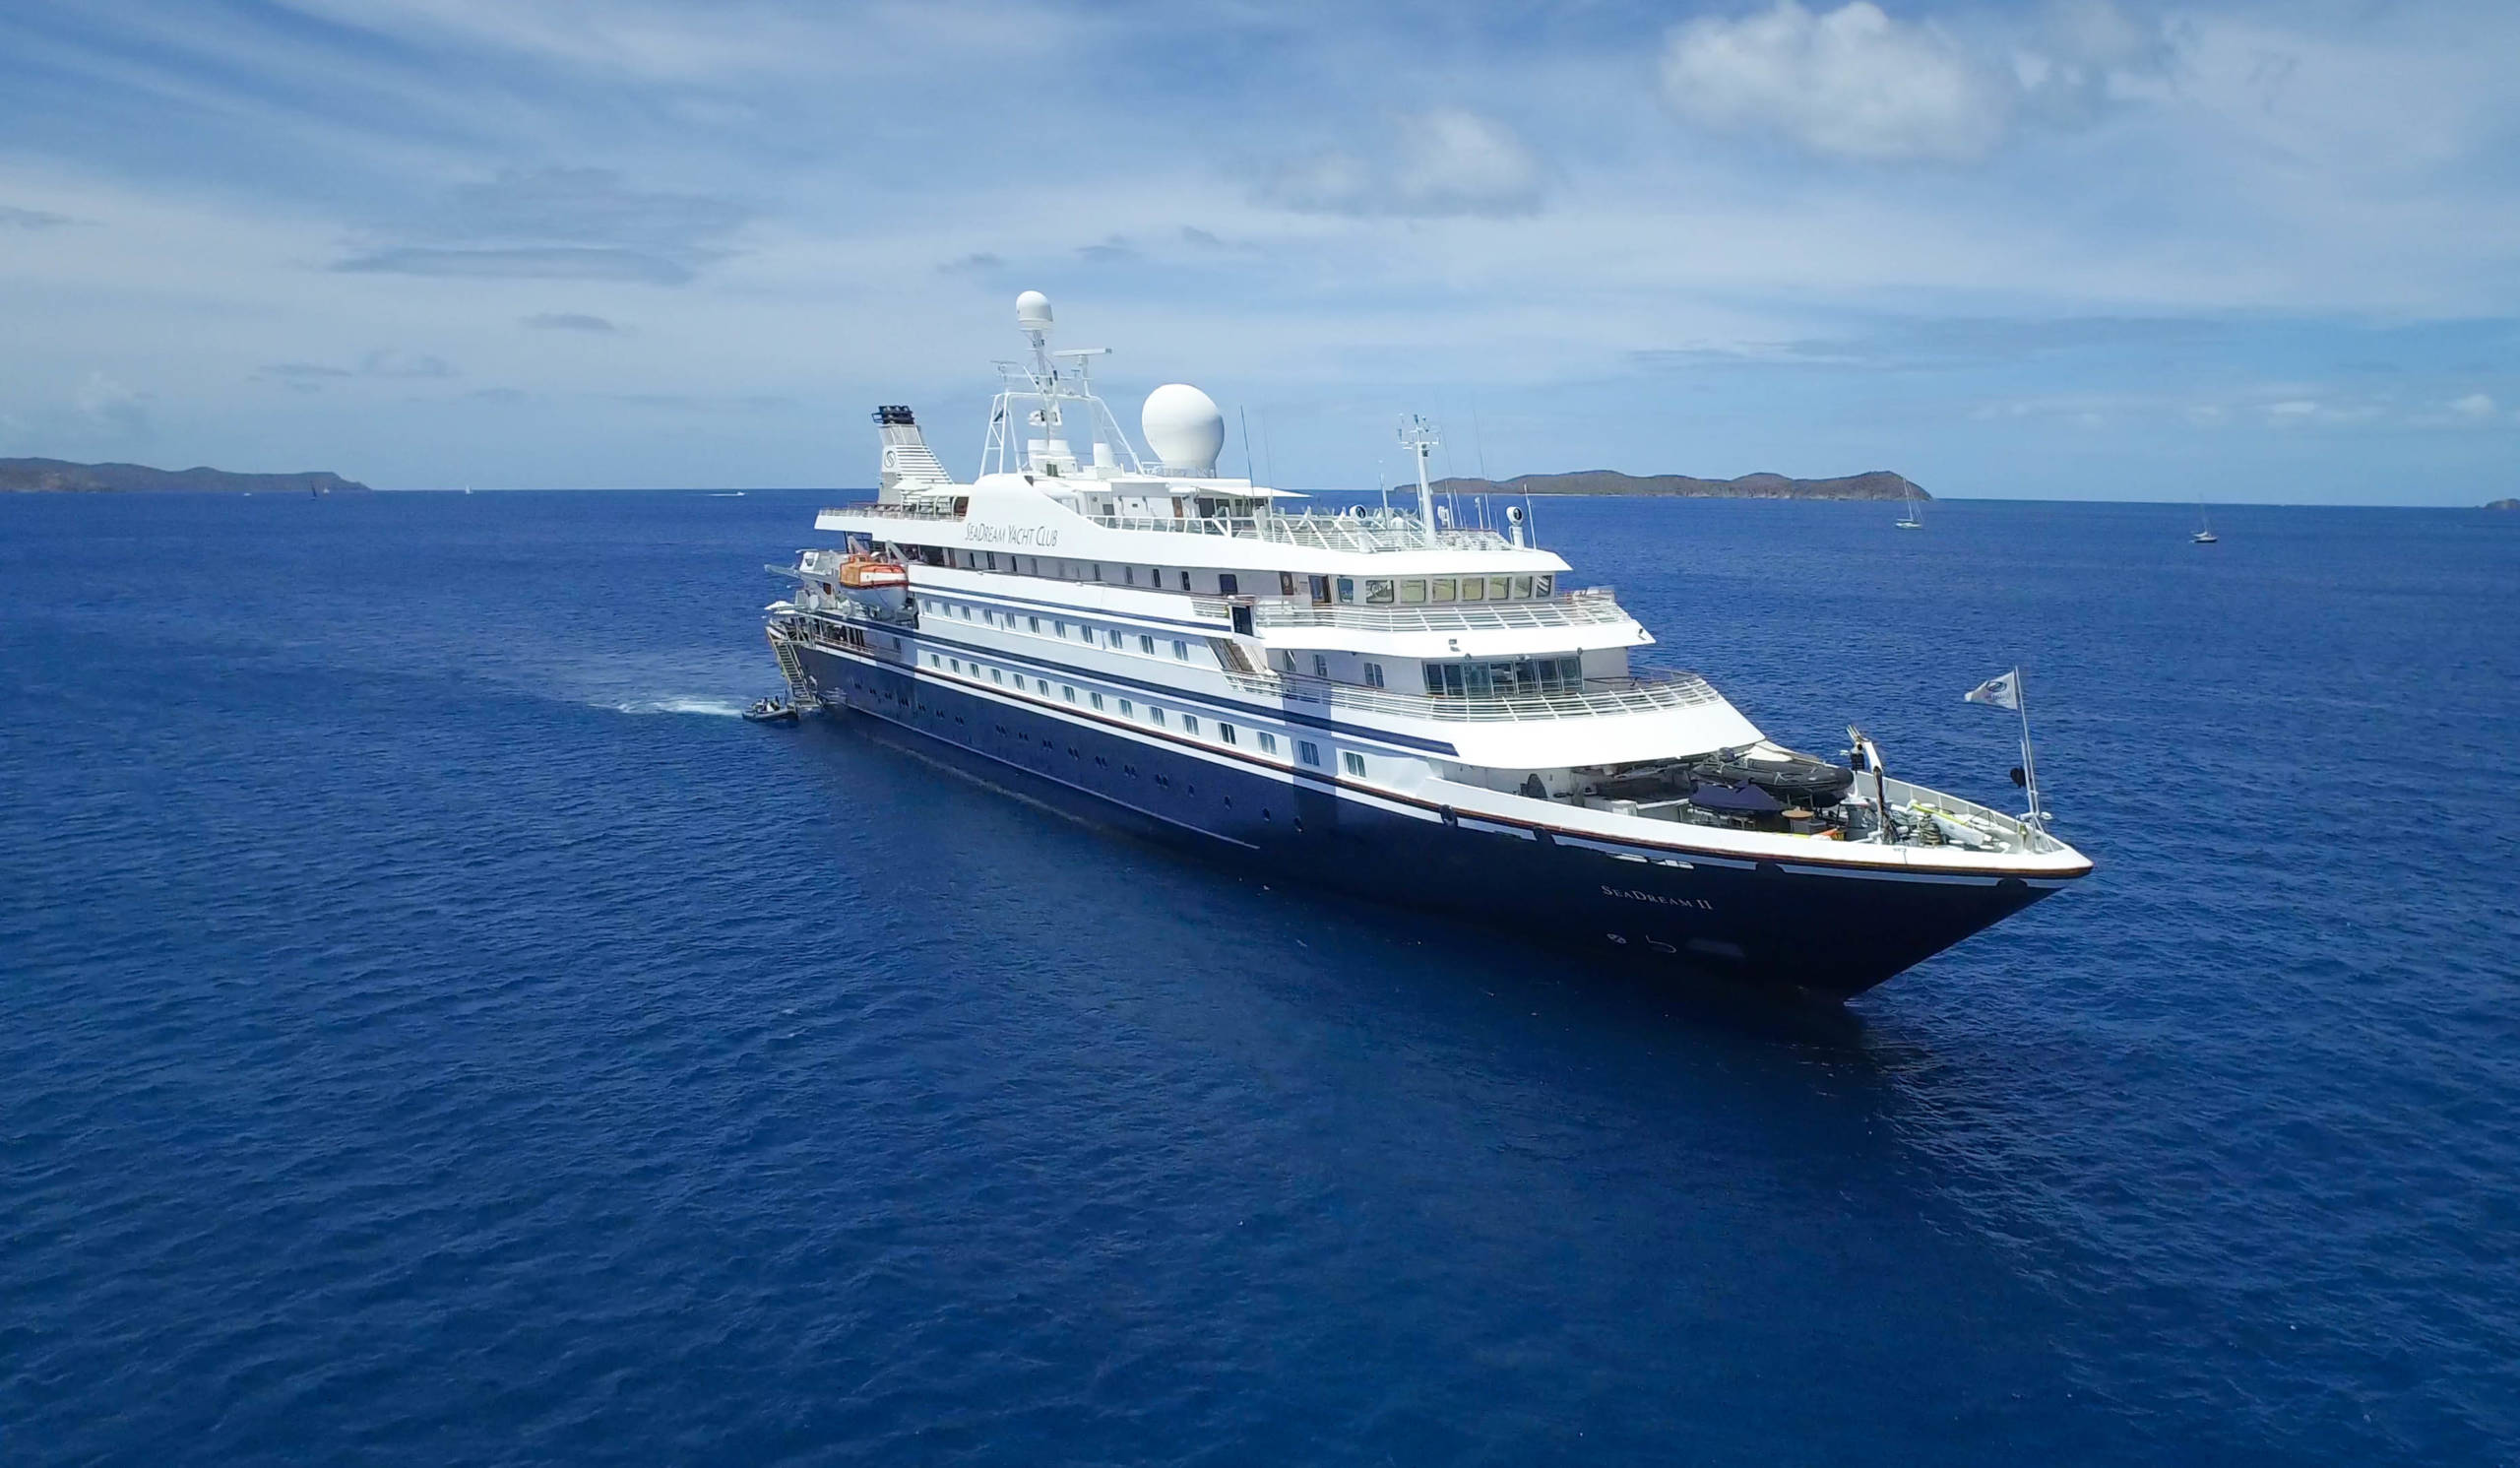 The first cruise ship to resume sailing in the Caribbean is having a COVID scare